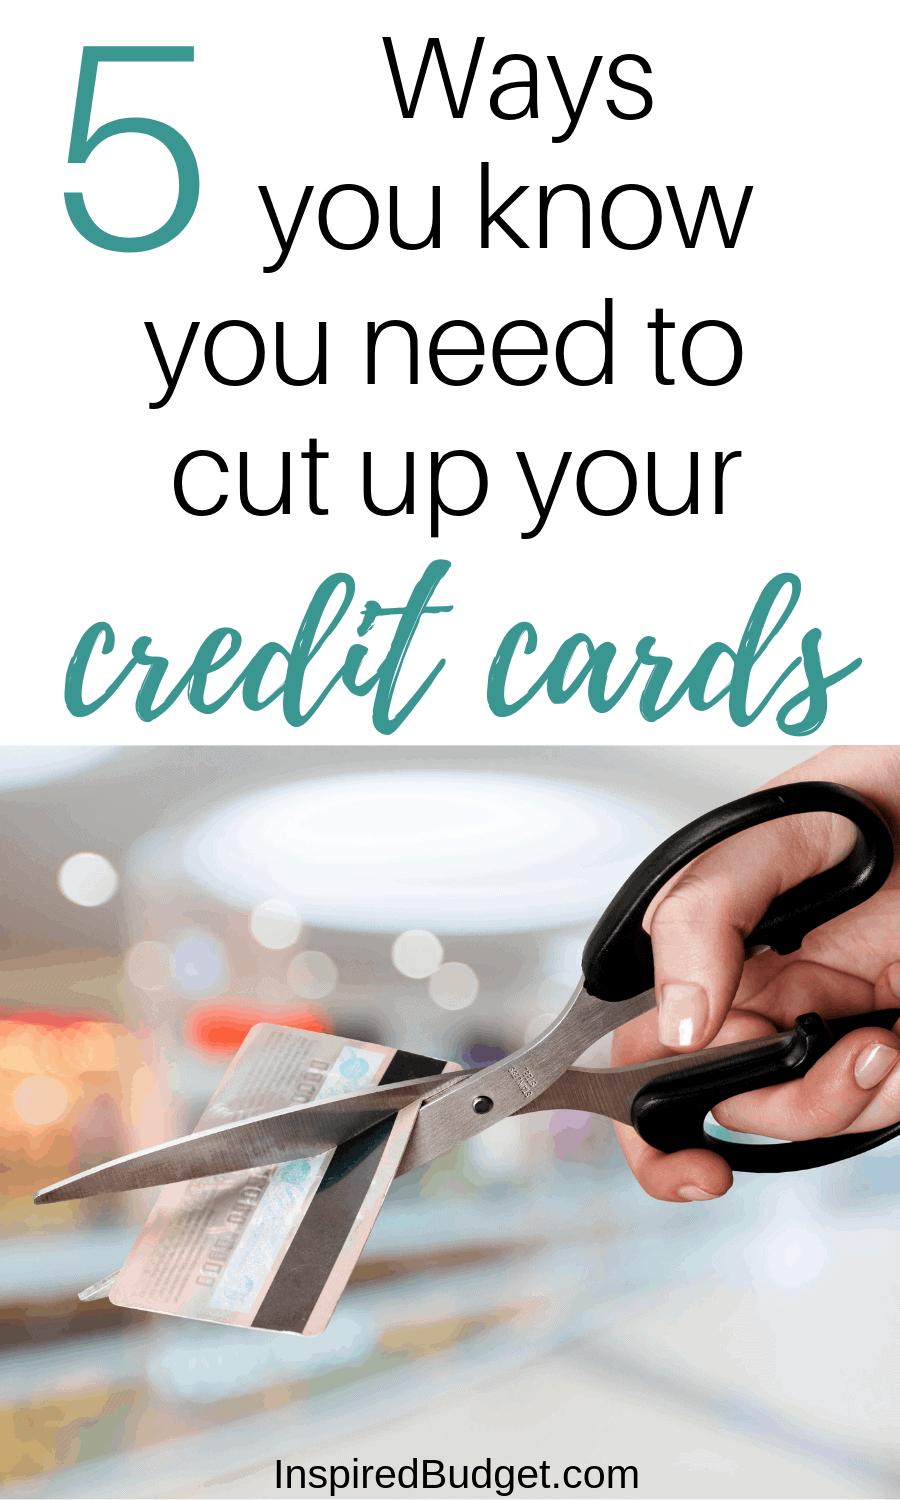 cut up credit cards image 1